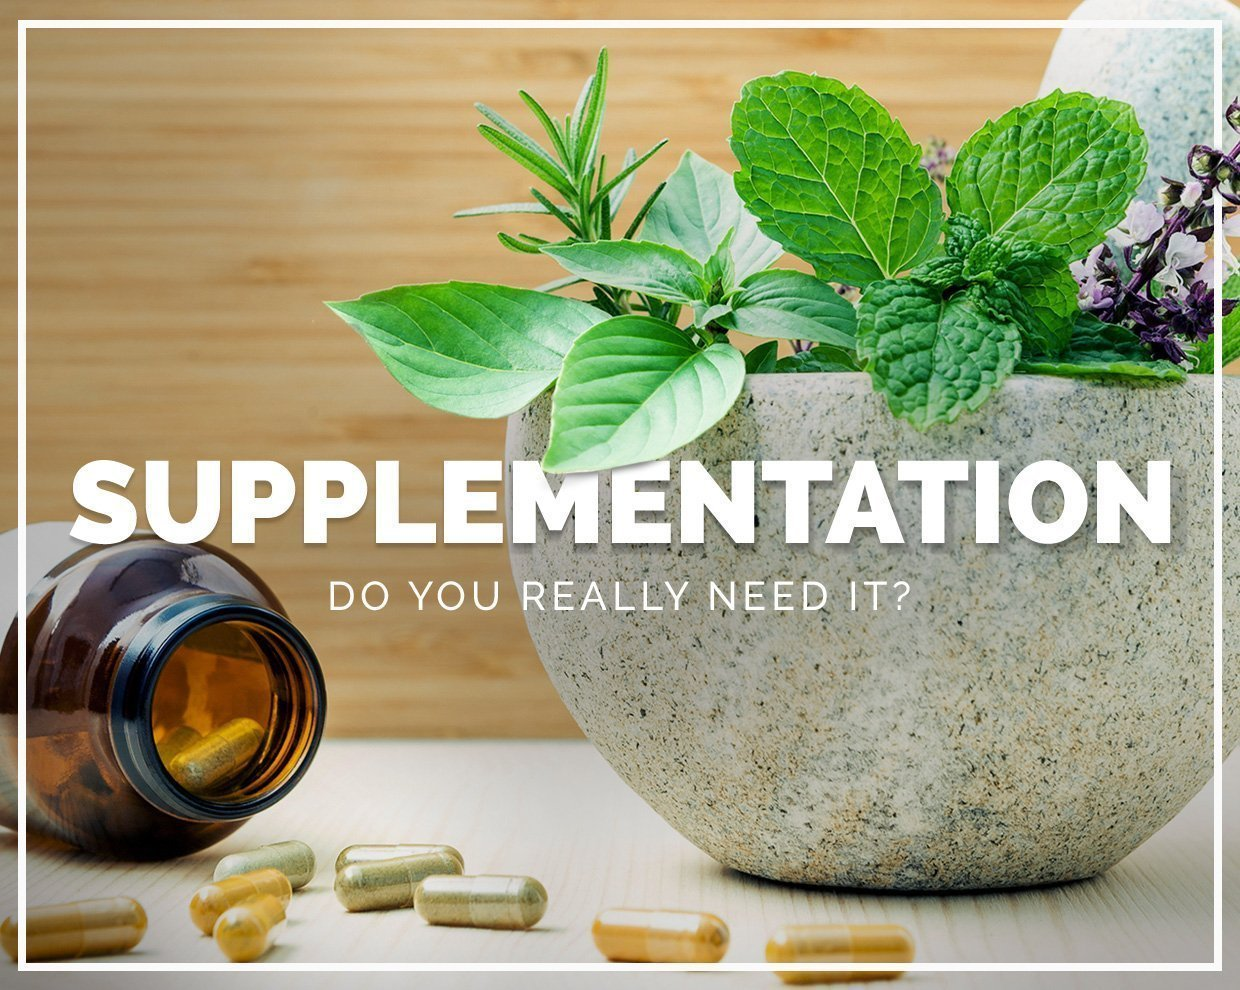 Supplementation